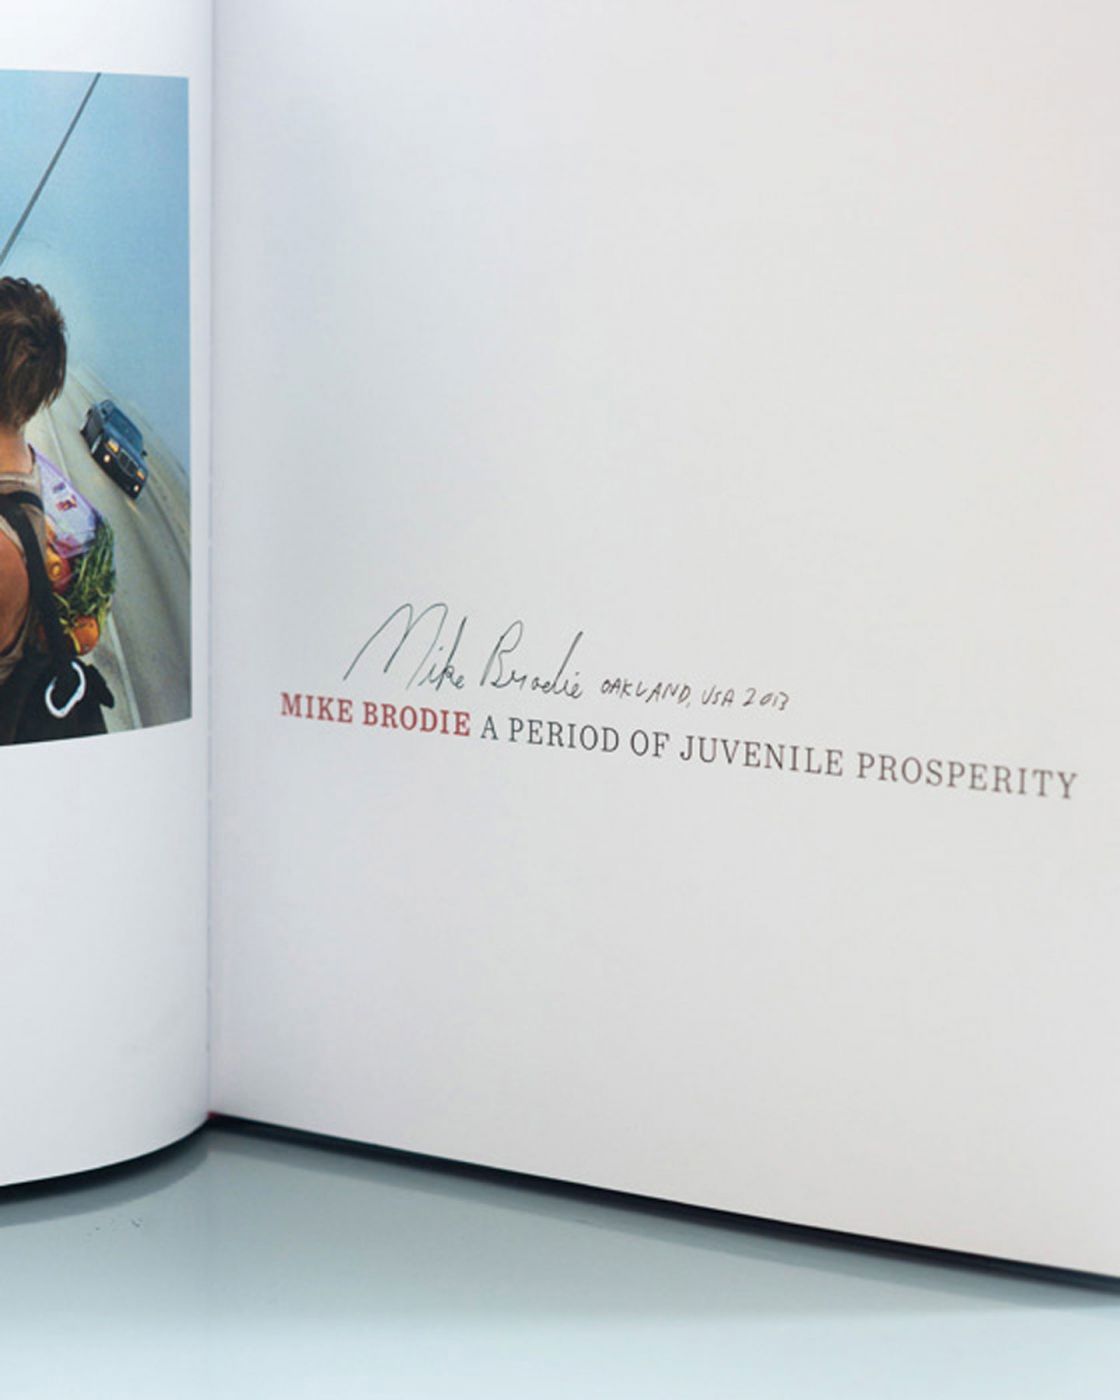 Mike Brodie: A Period of Juvenile Prosperity, Slipcased Limited Edition of 225 (First Edition) [SIGNED]